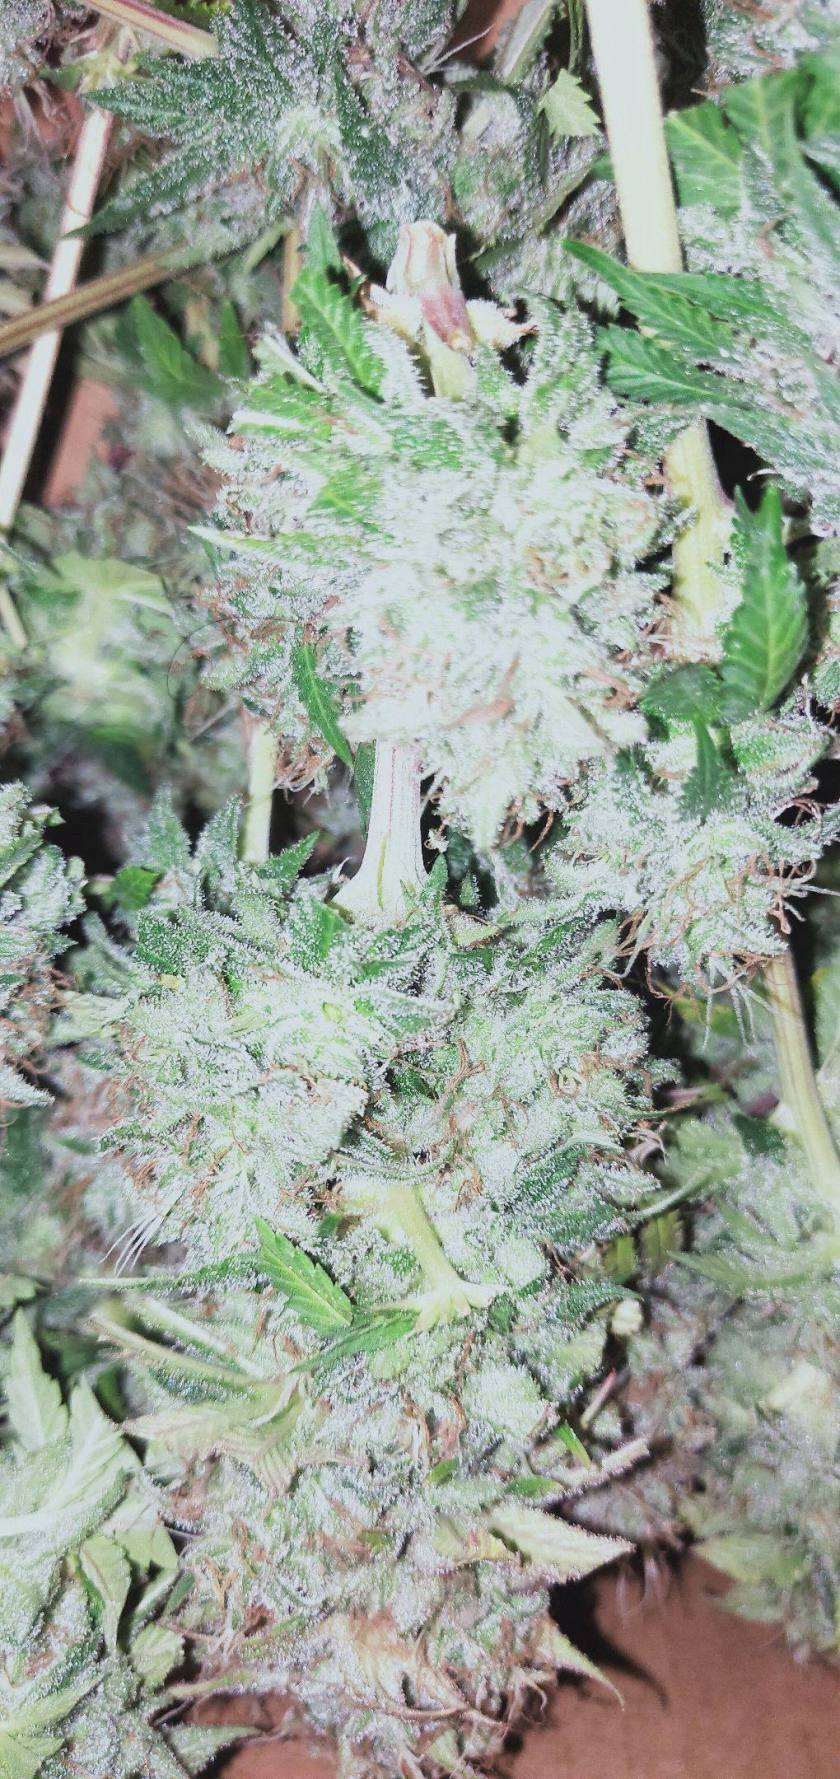 ILGM's White widow grown indoors up close shot